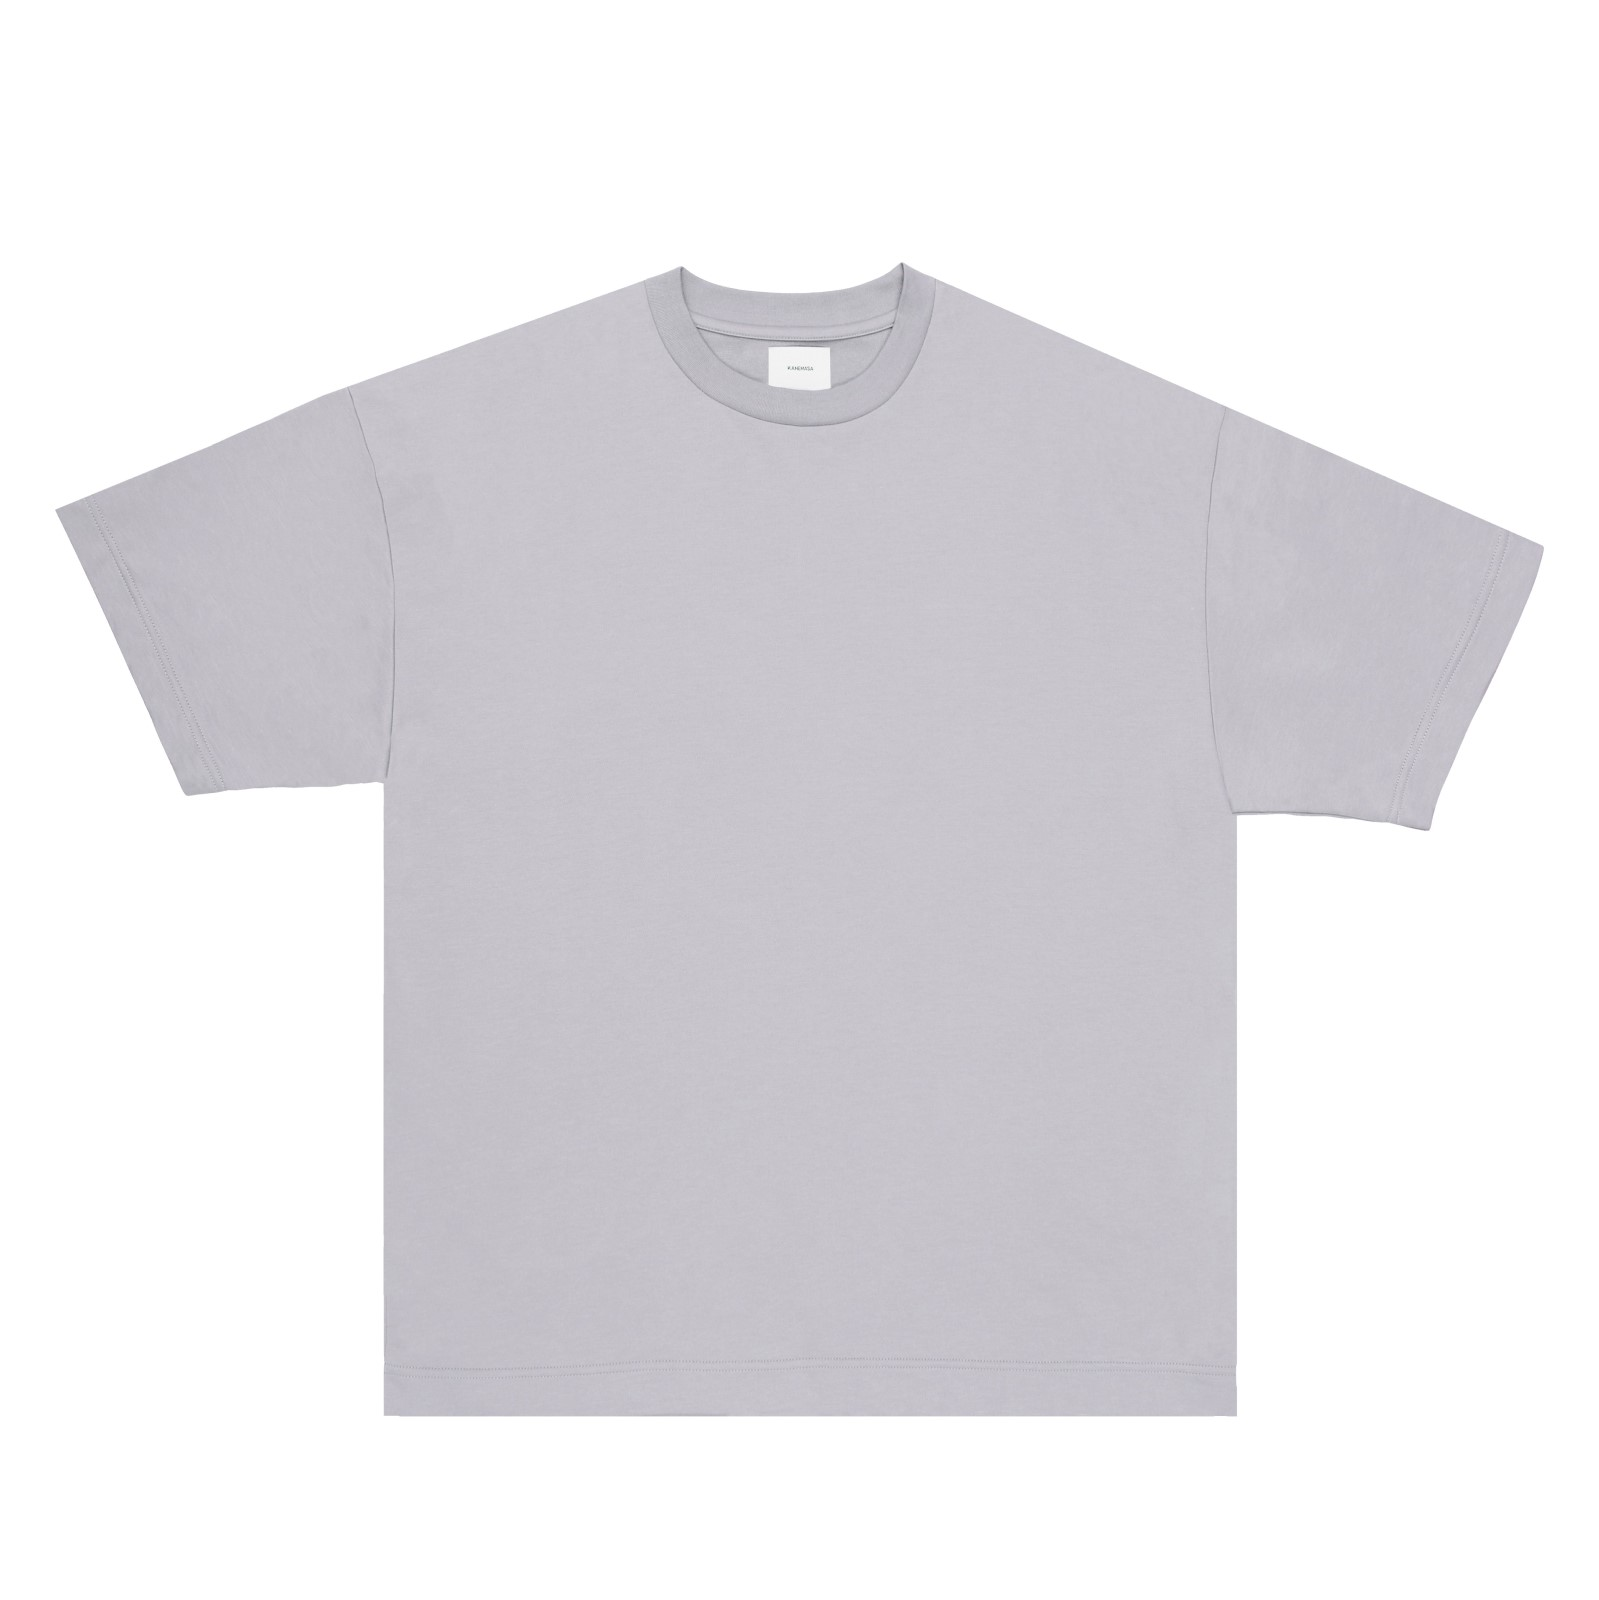 【sold out】Super High Gauge Just Fit Crew neck cut & sew